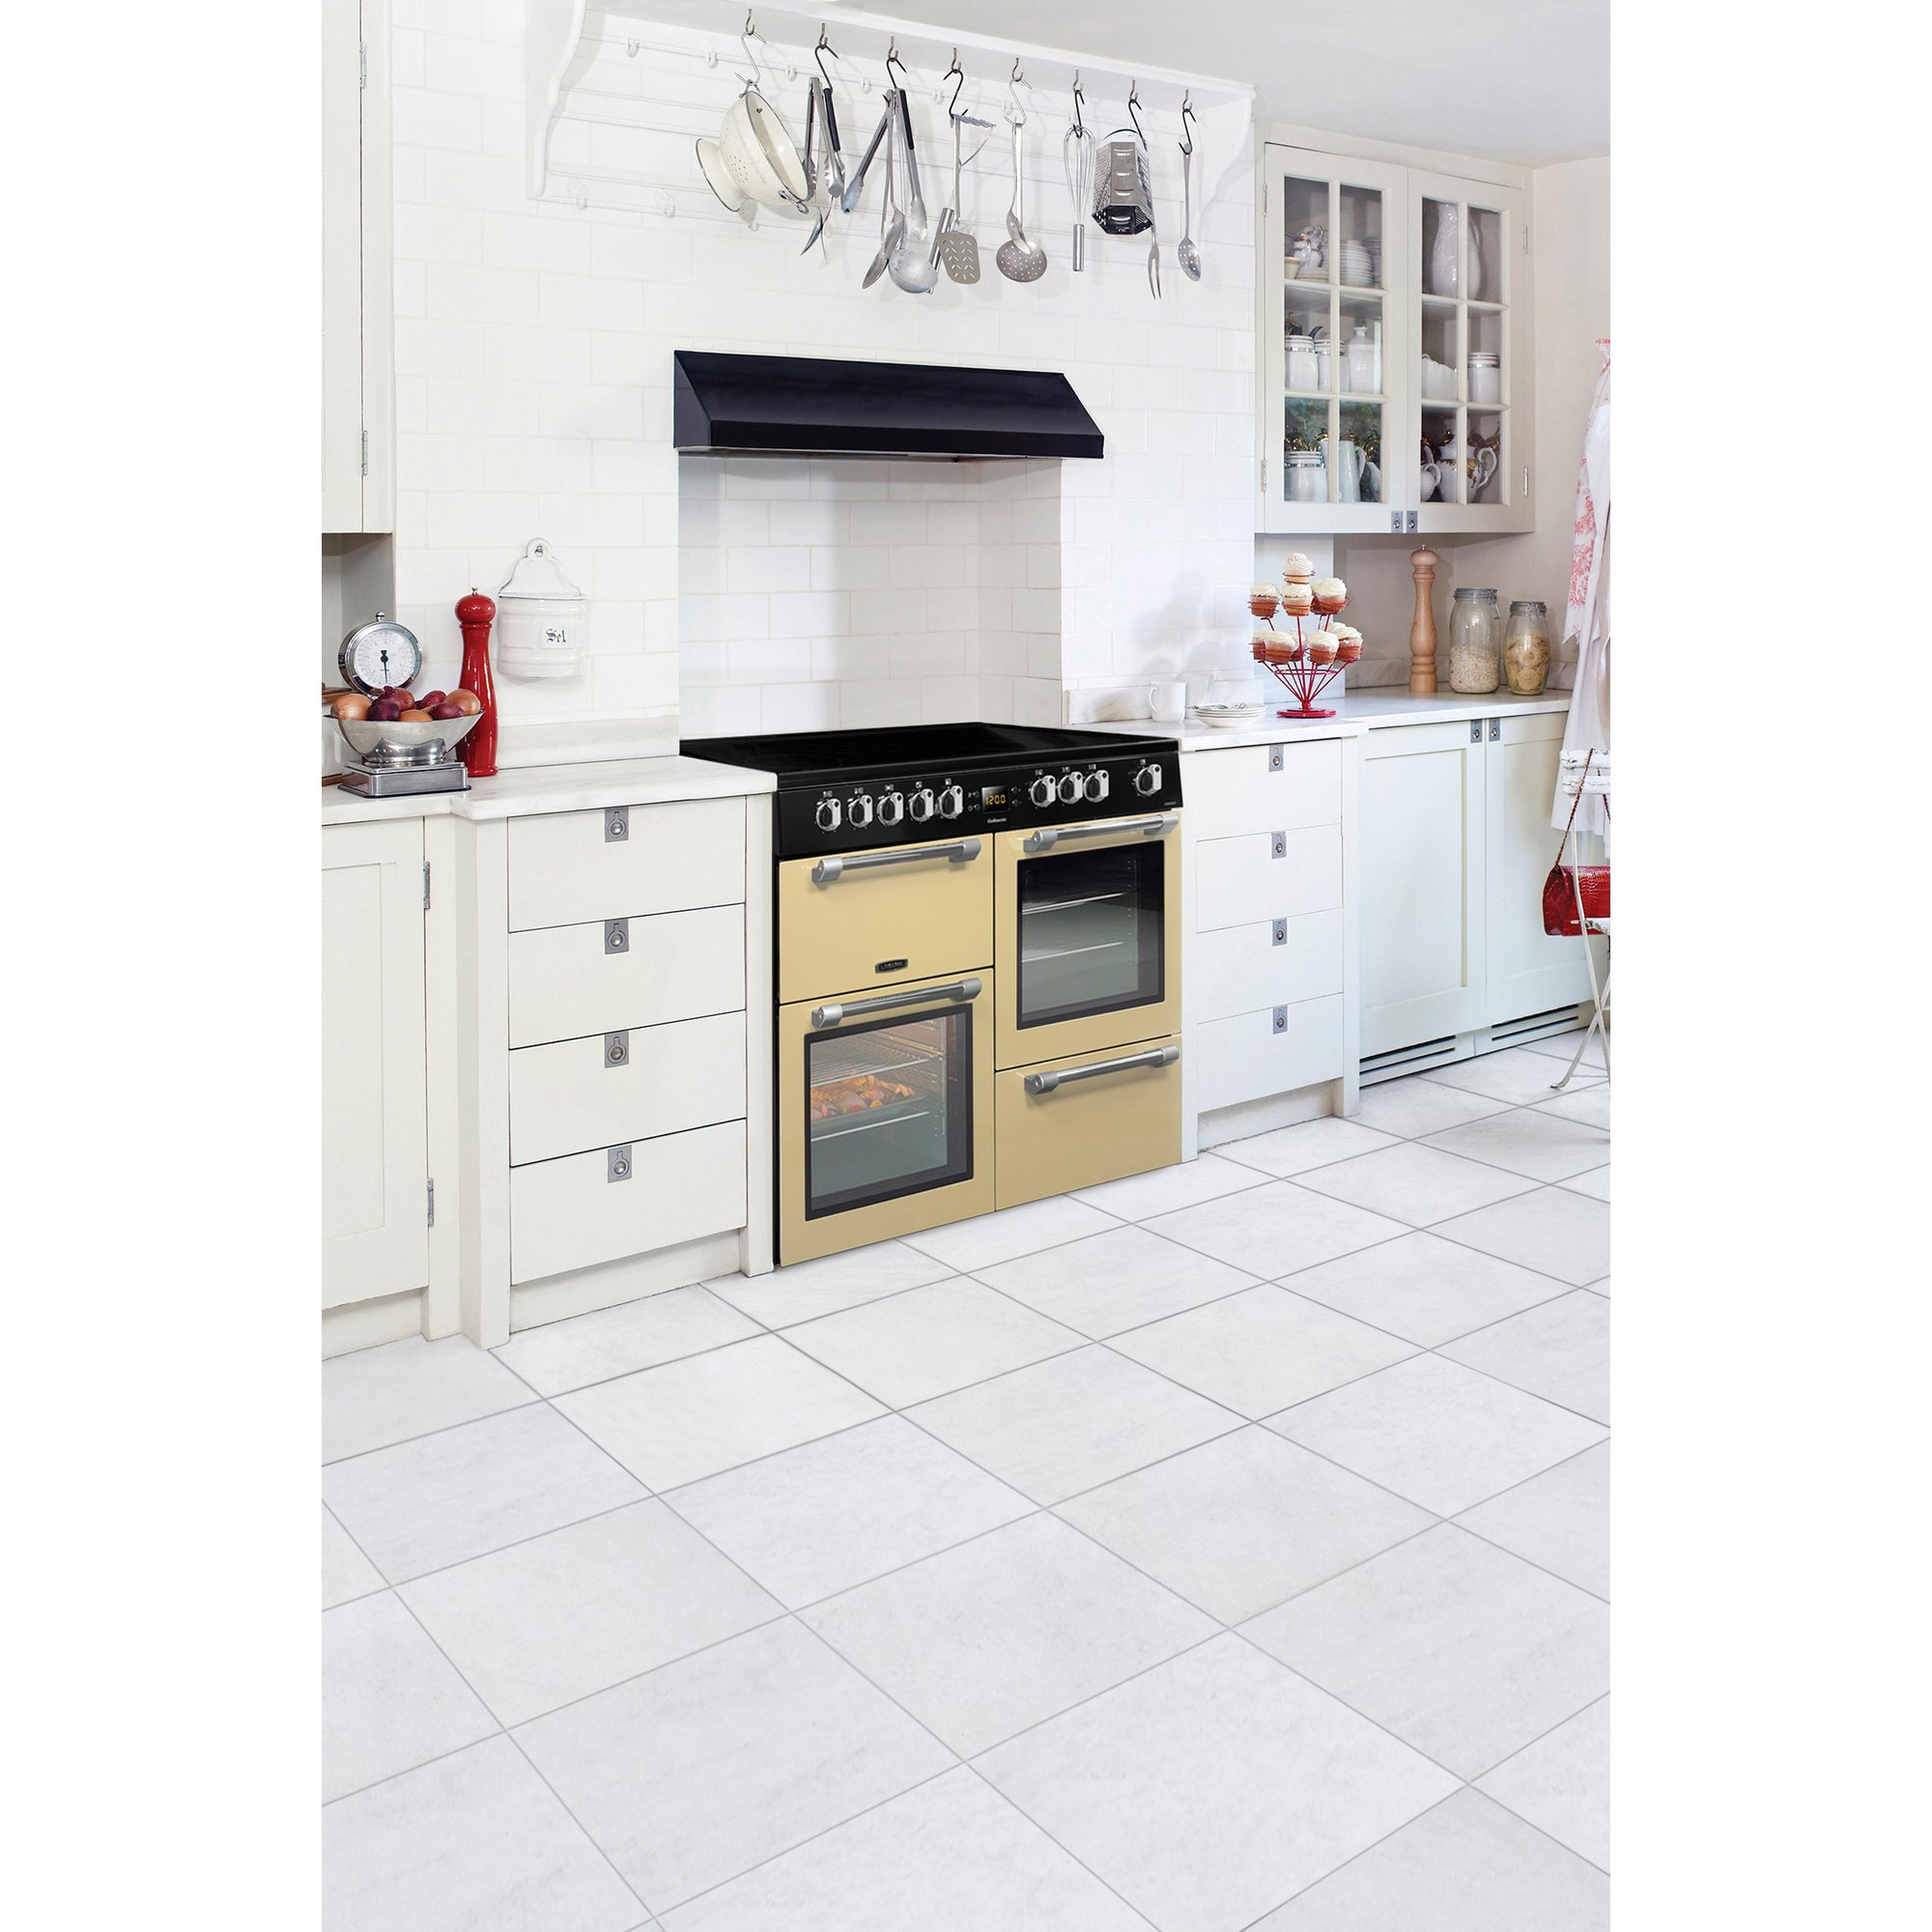 Image of Leisure 100cm Cookmaster Electric Range Cooker